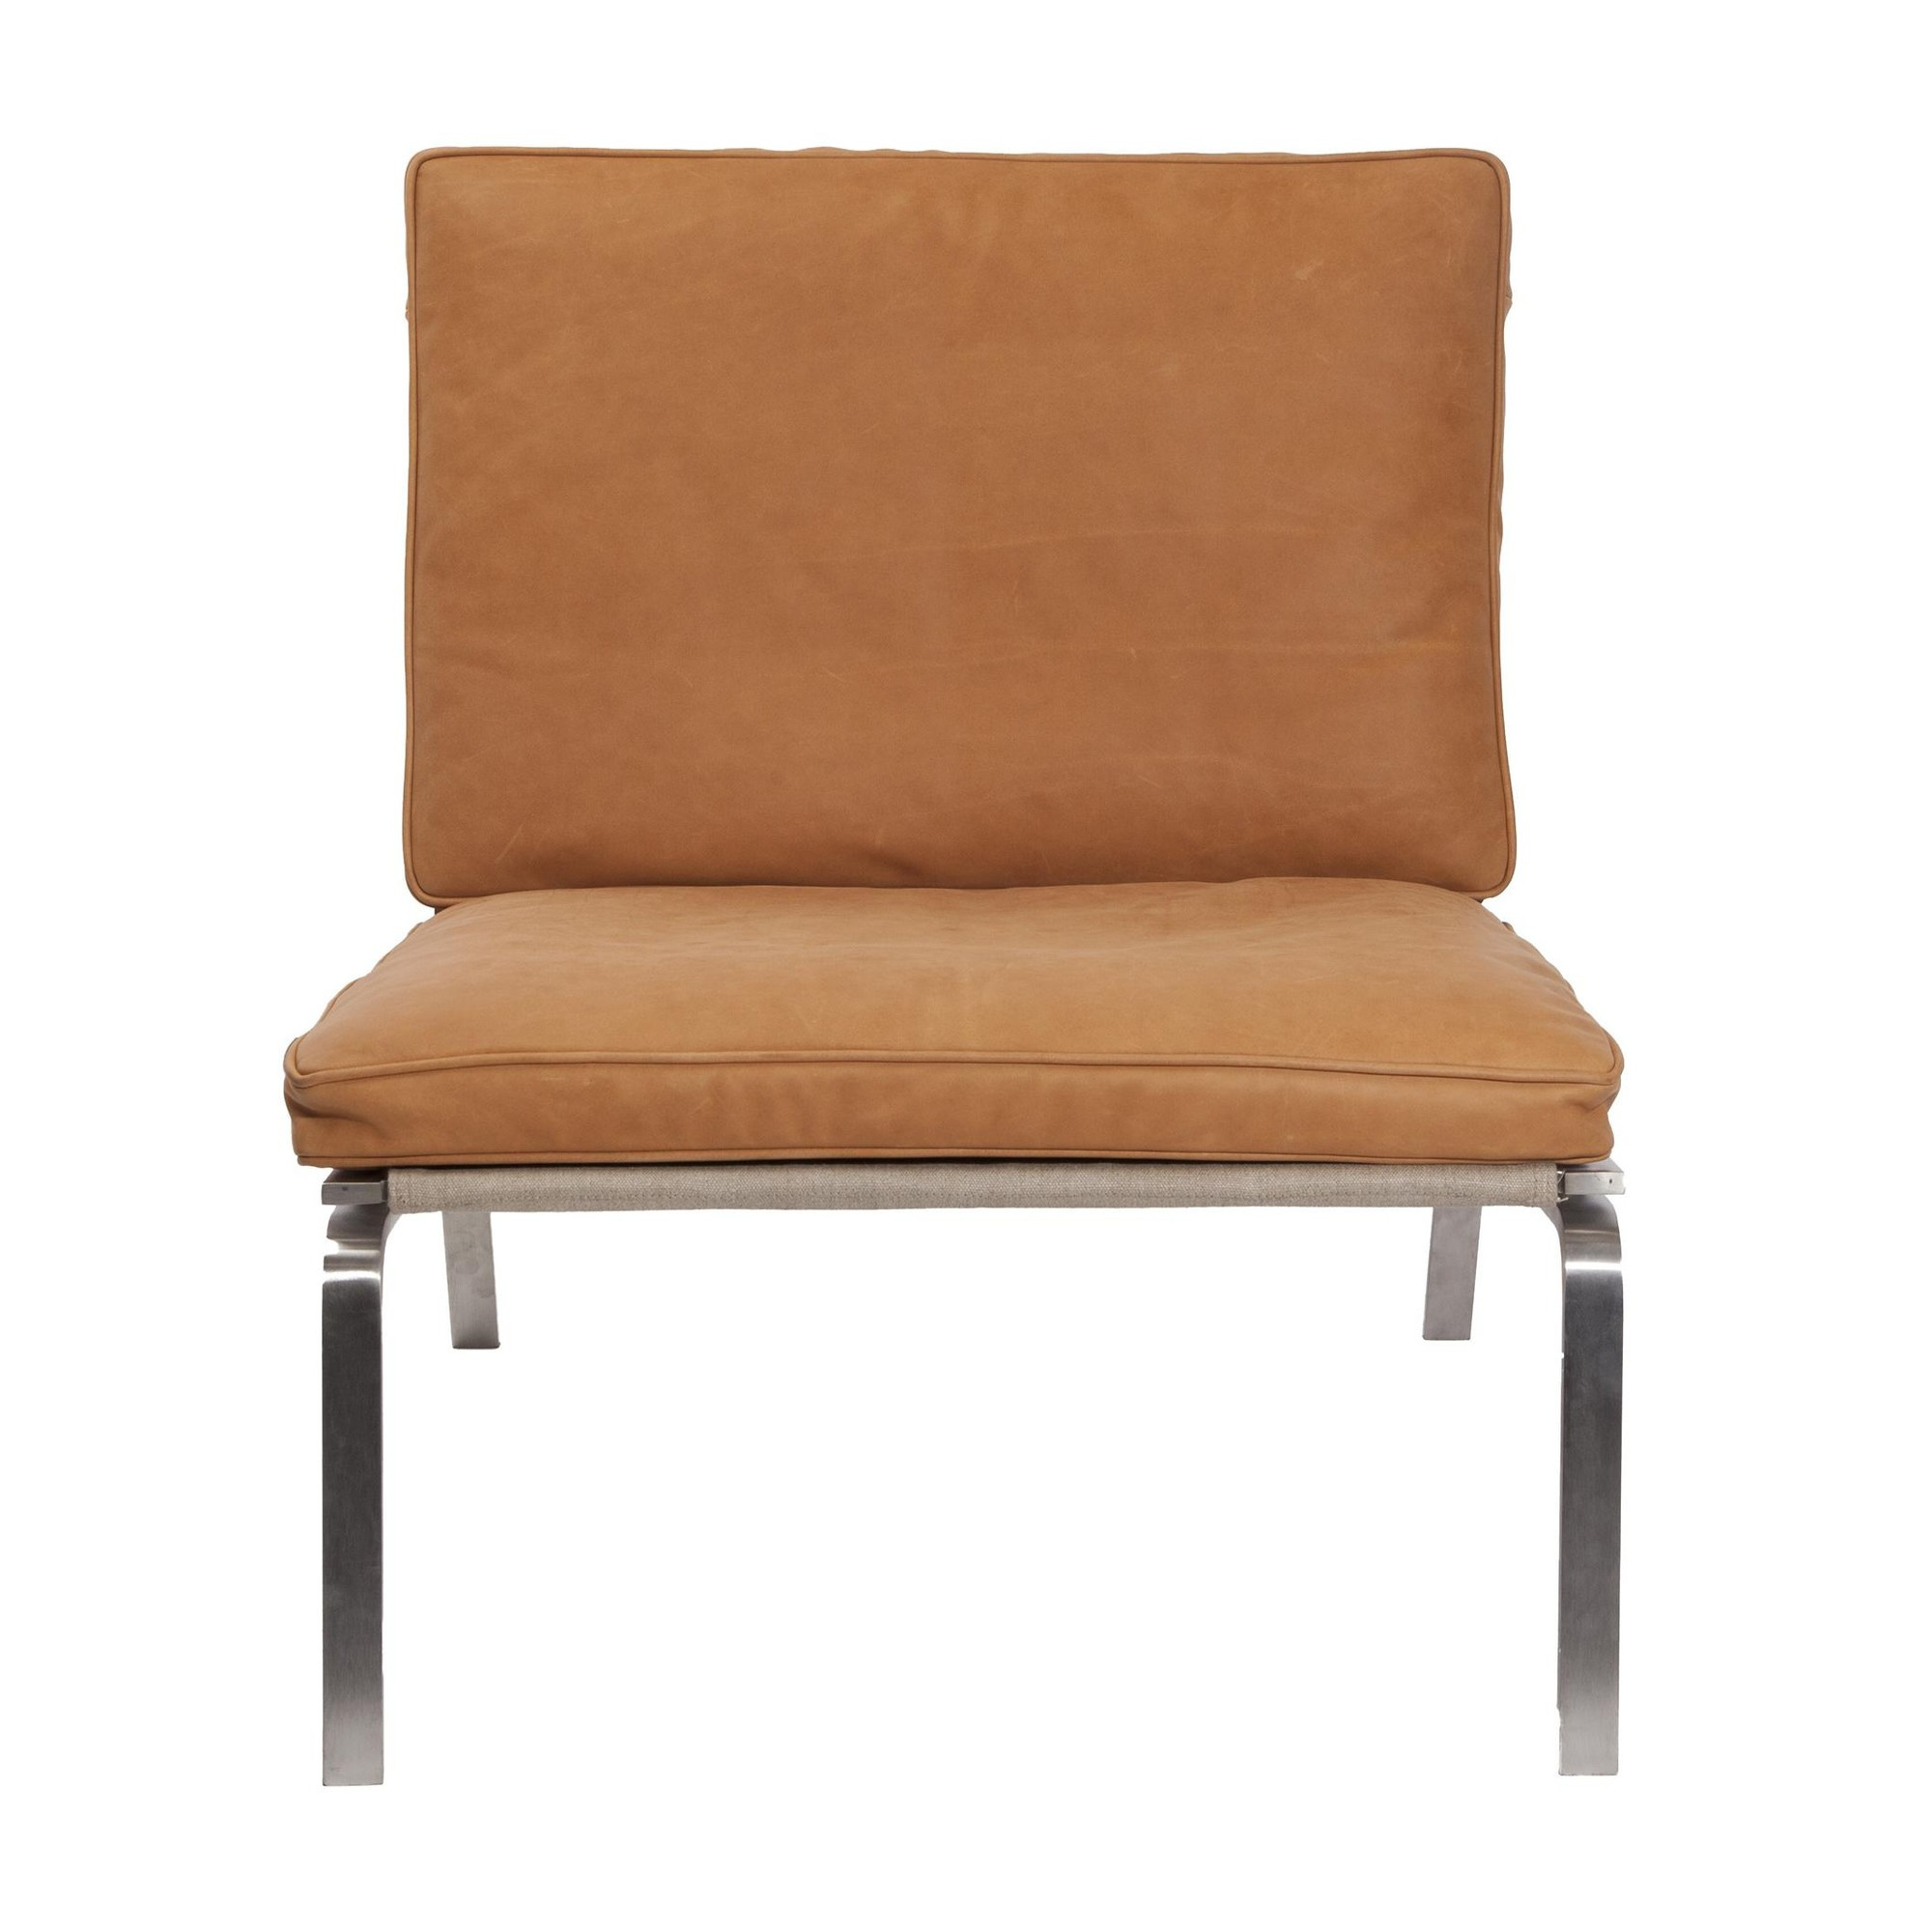 Lounge Sessel Leder Cognac Man Lounge Chair Sessel